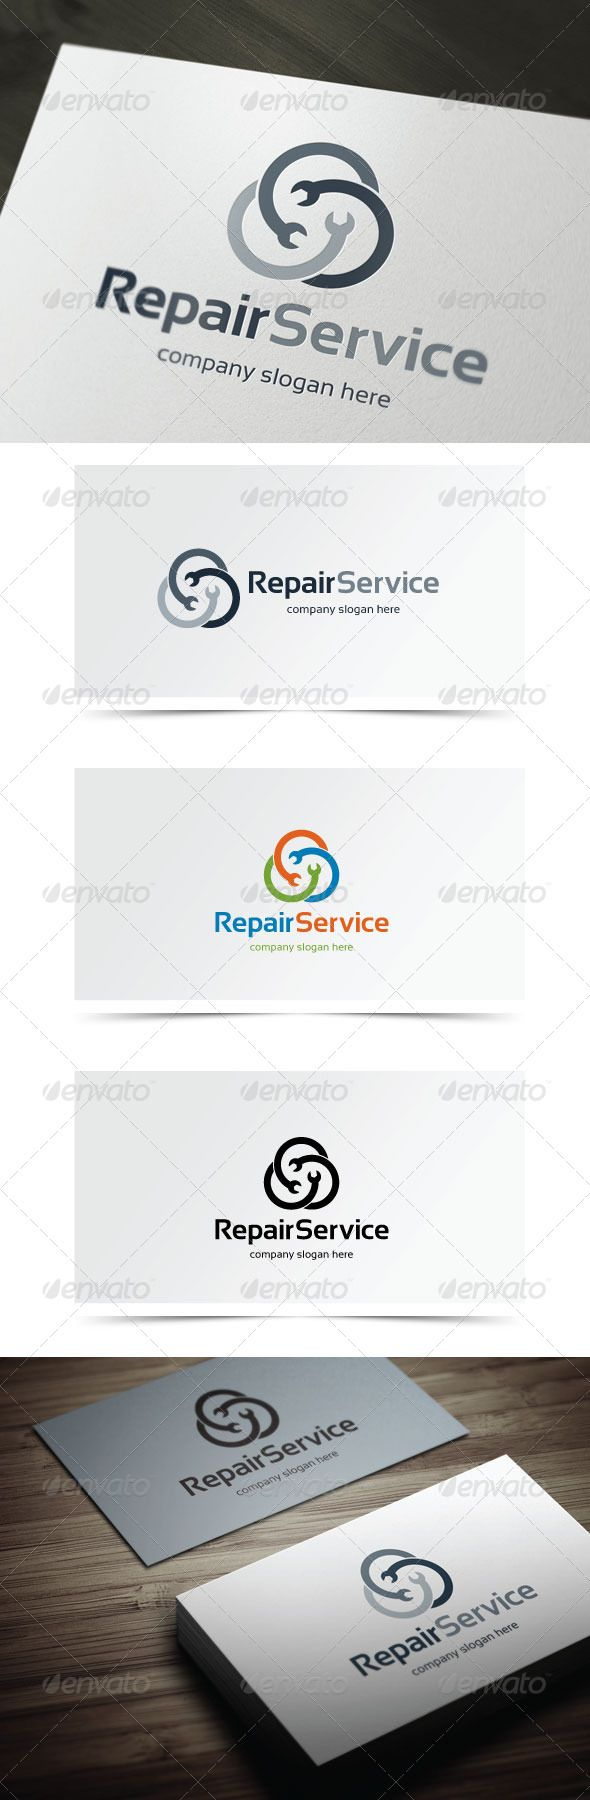 Repair Service — Vector EPS #media #wrench • Available here → https://graphicriver.net/item/repair-service/6059161?ref=pxcr